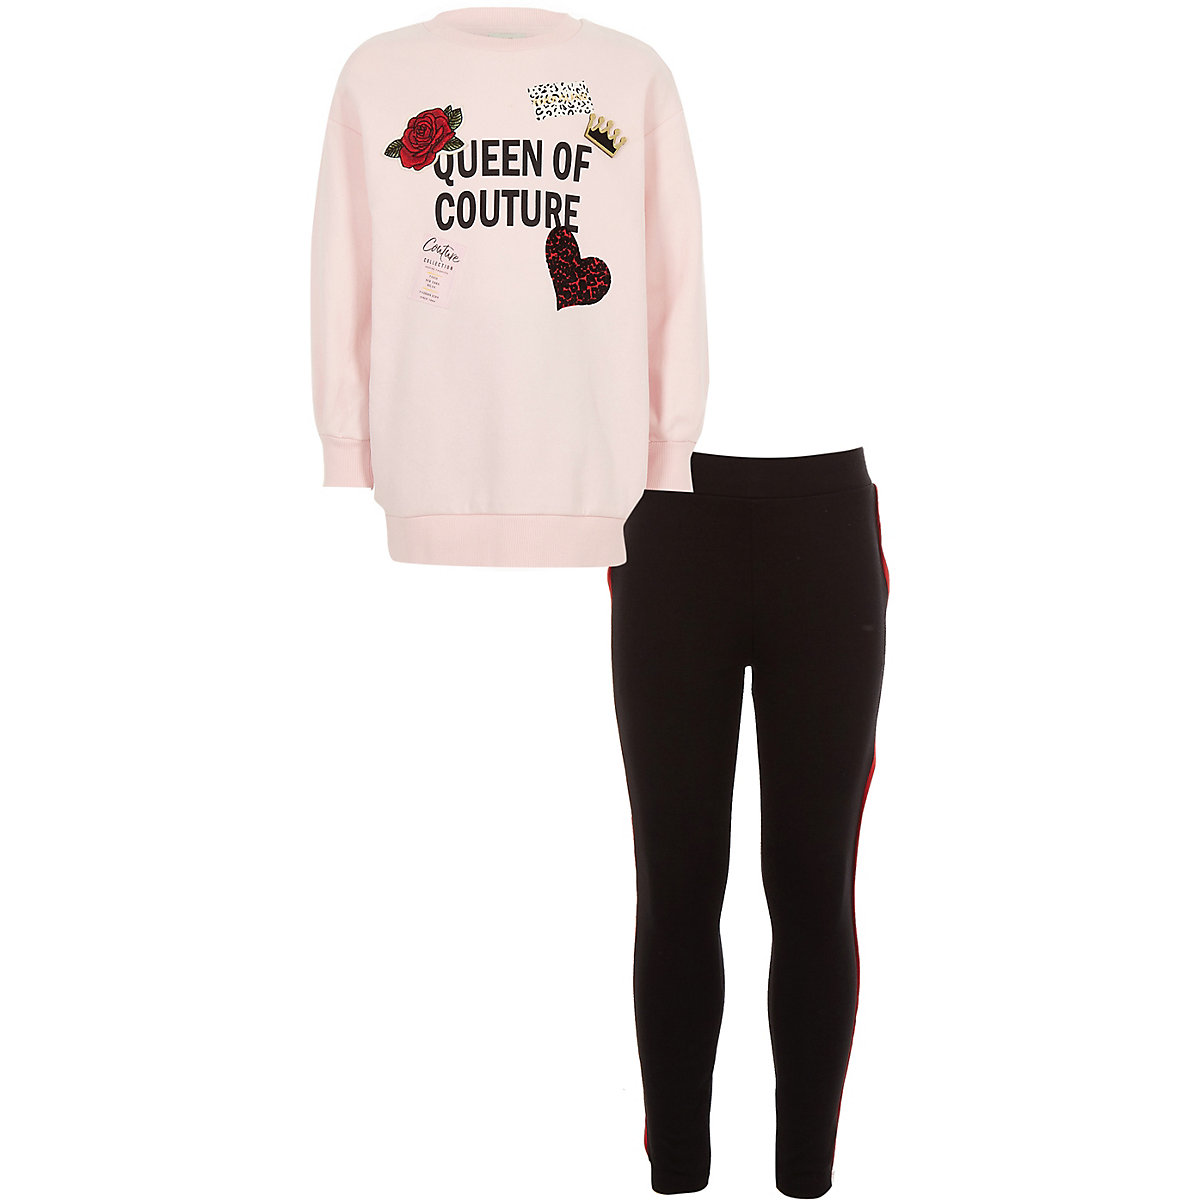 Girls pink 'Queen Couture' sweatshirt outfit